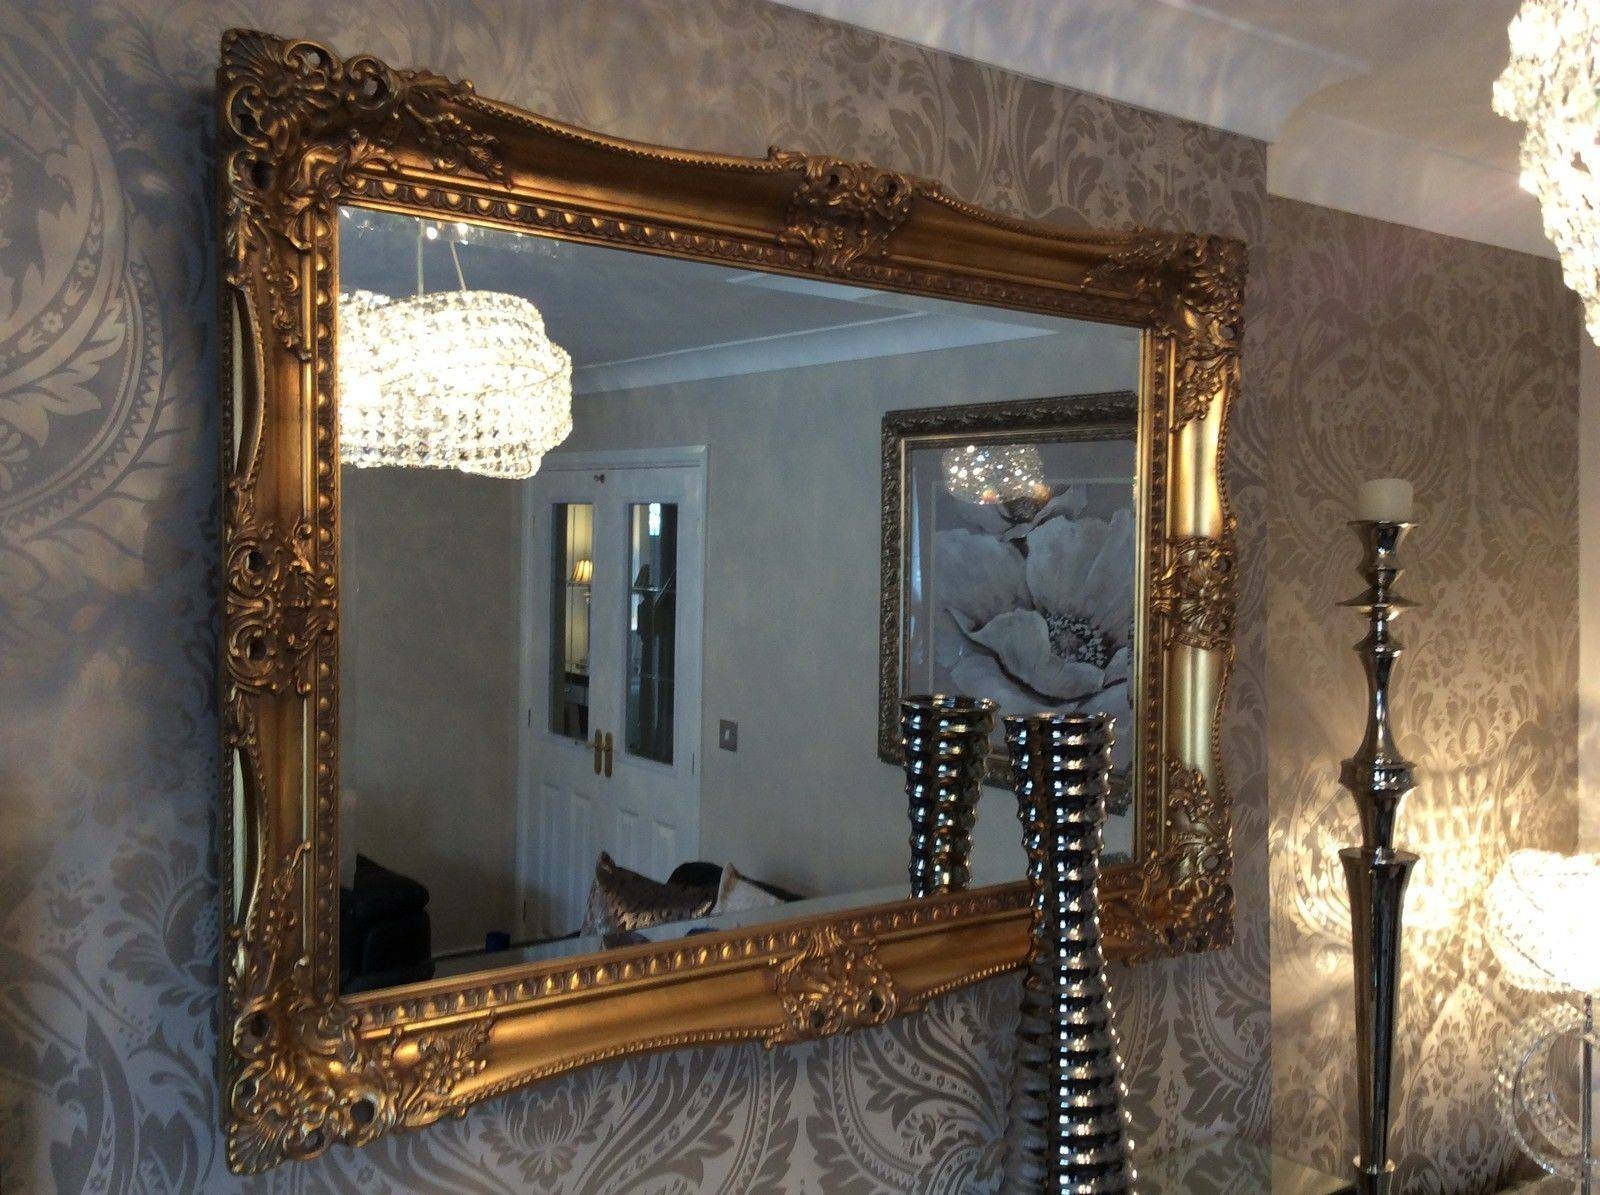 X Large Antique Gold Shabby Chic Ornate Decorative Wall Mirror Inside Cream Antique Mirrors (Gallery 12 of 25)